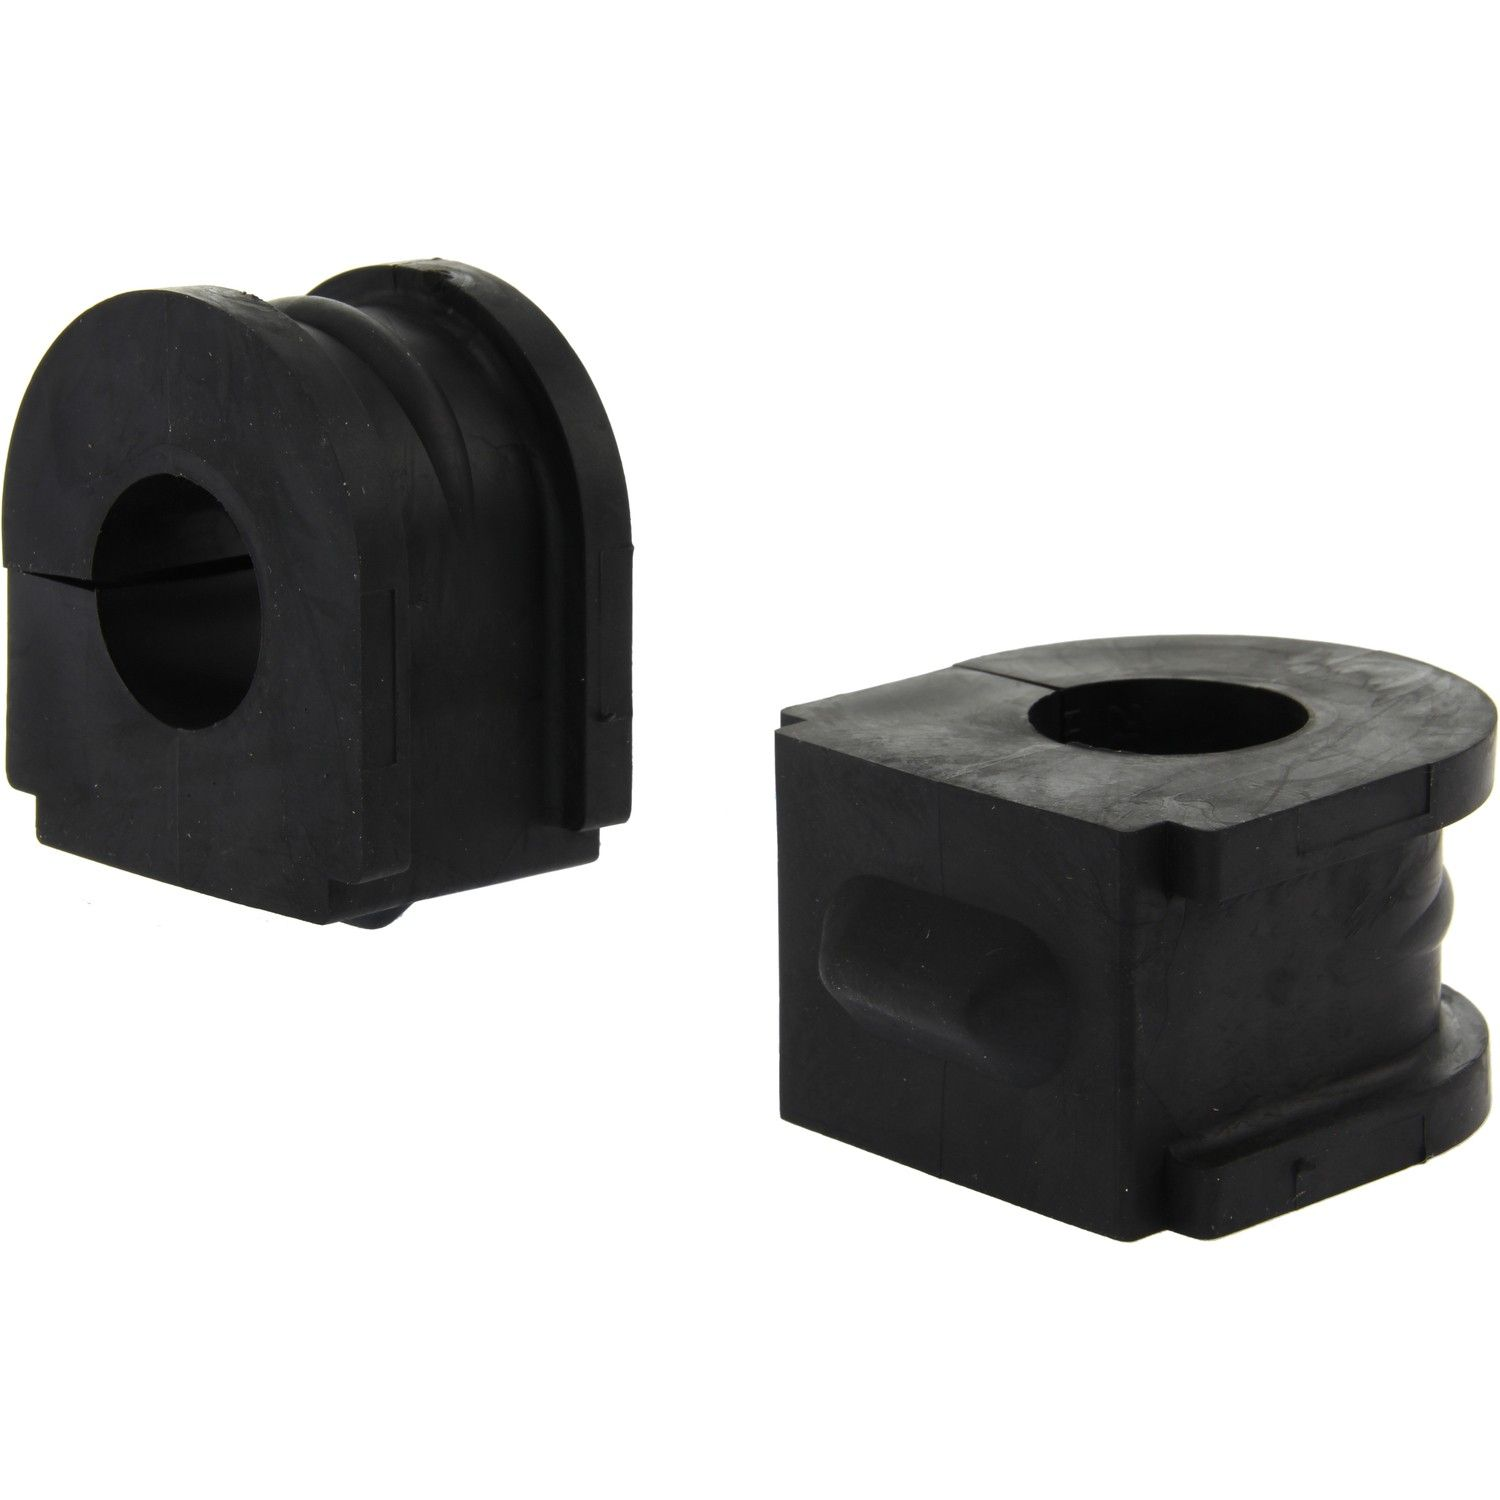 Chevrolet S10 Suspension Stabilizer Bar Bushing Replacement